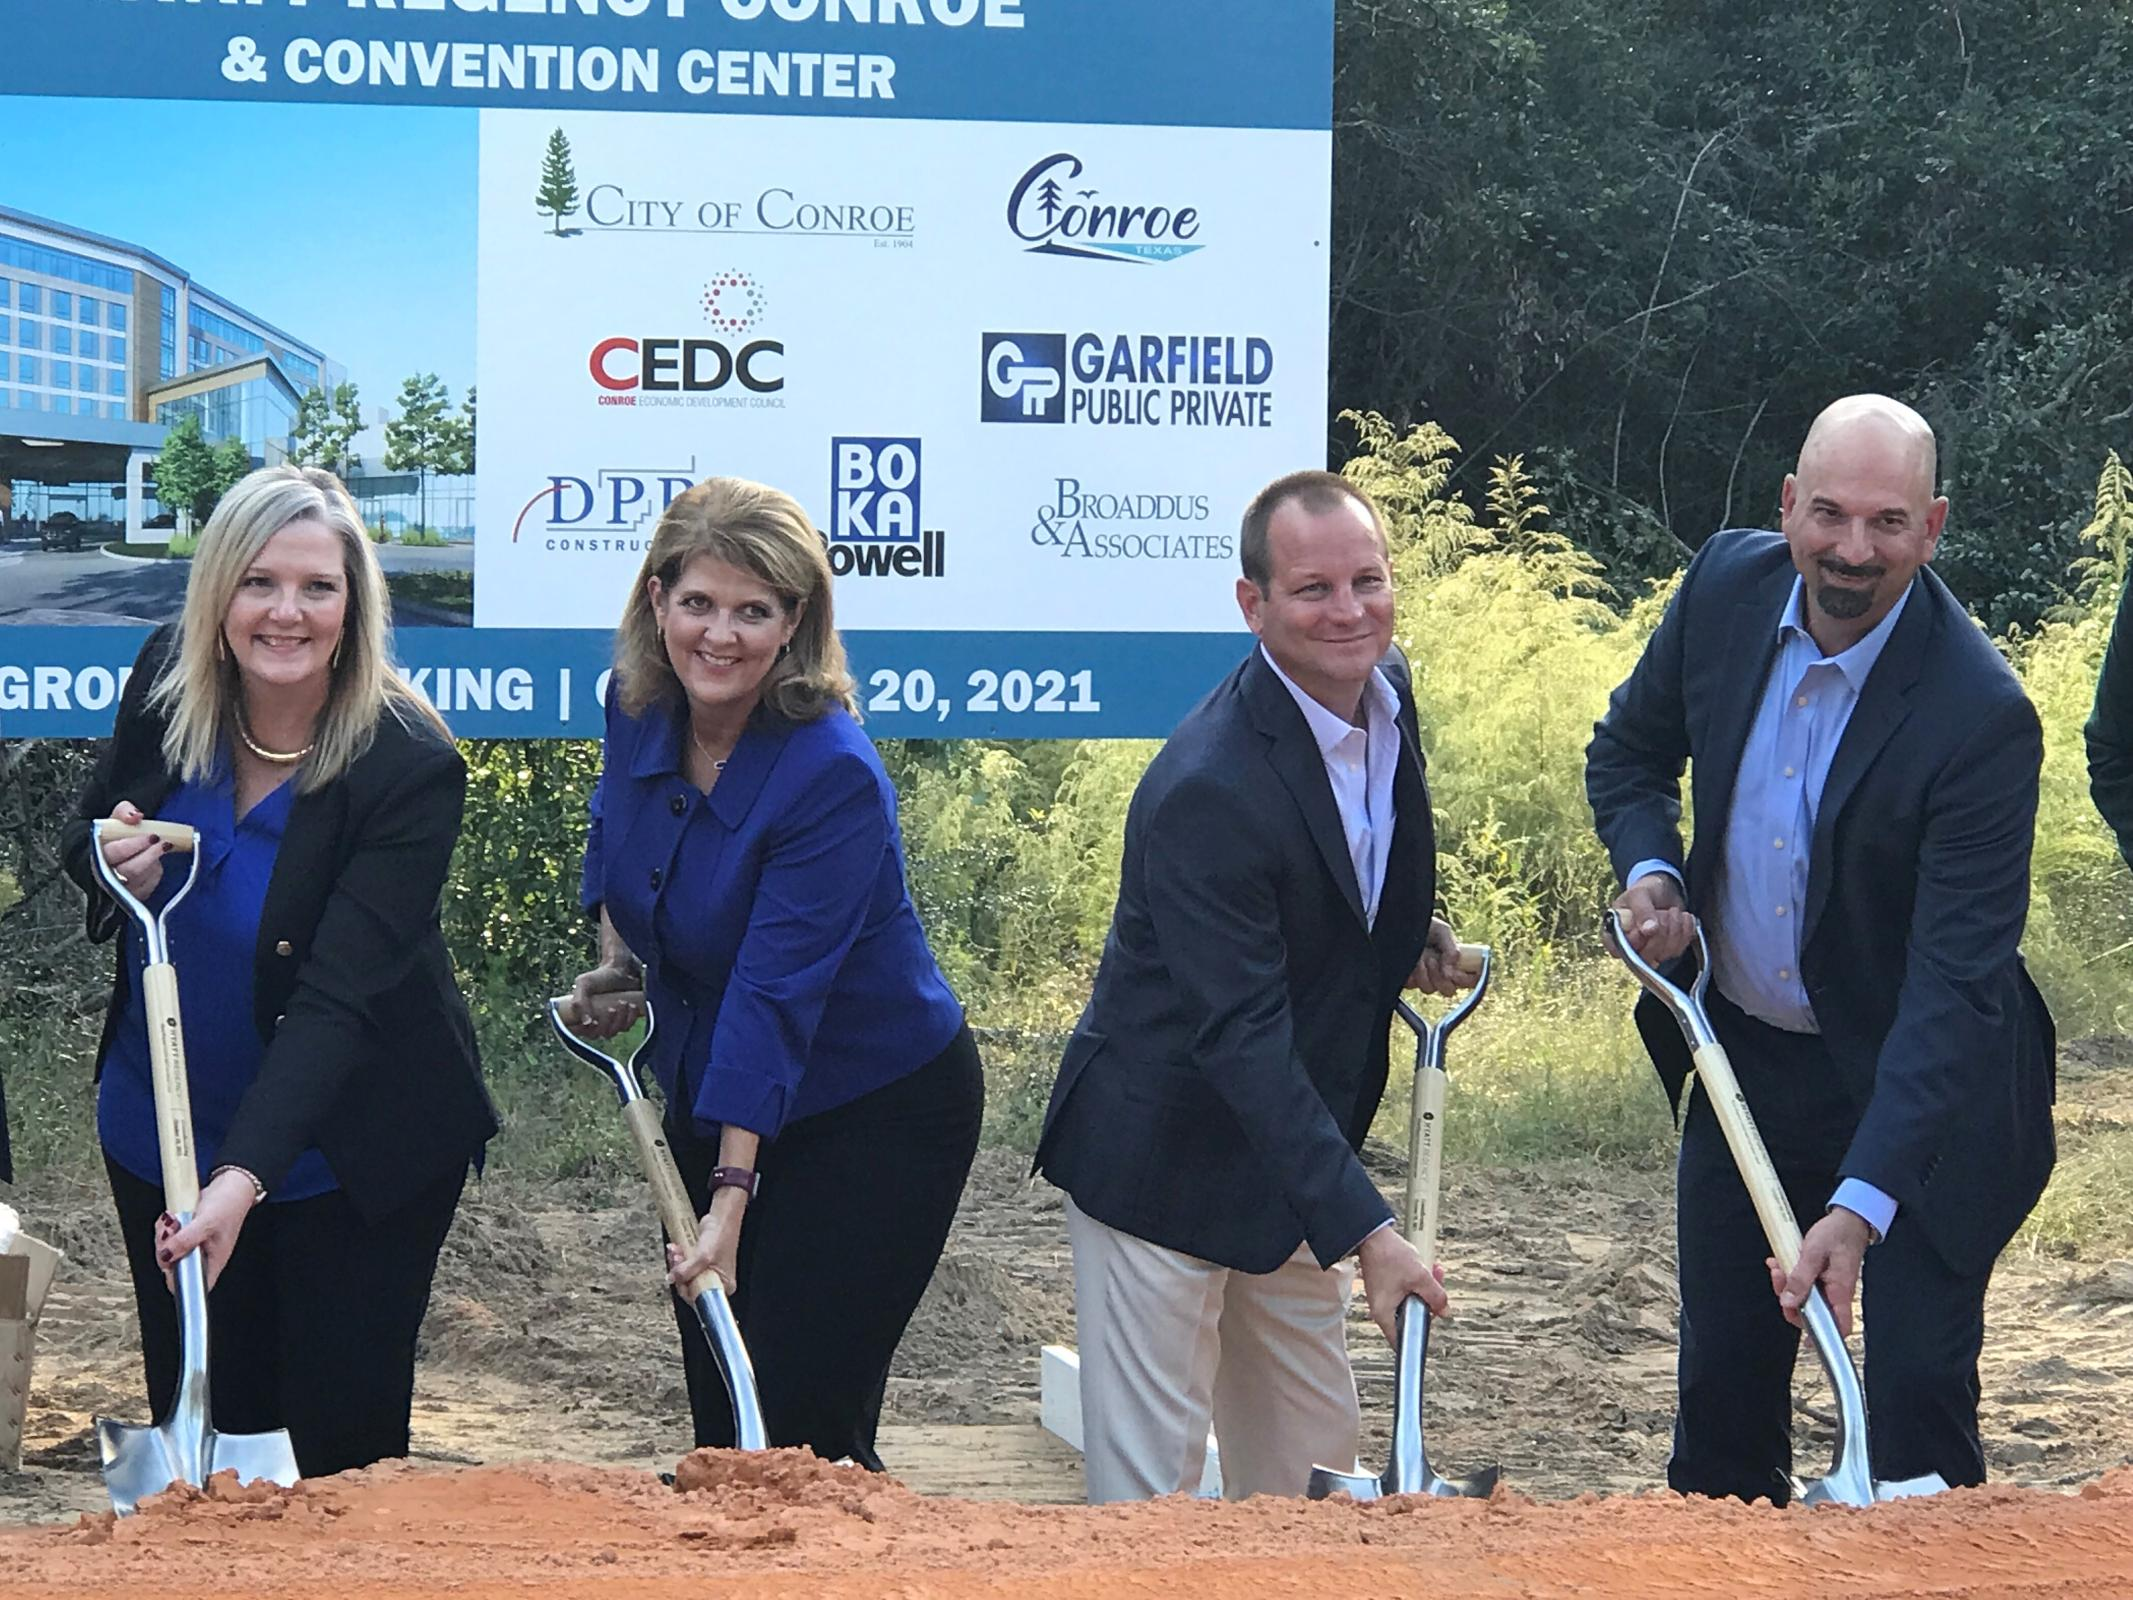 Groundbreaking Celebration Held for Hyatt Regency Conroe and Convention Center Photo - Click Here to See